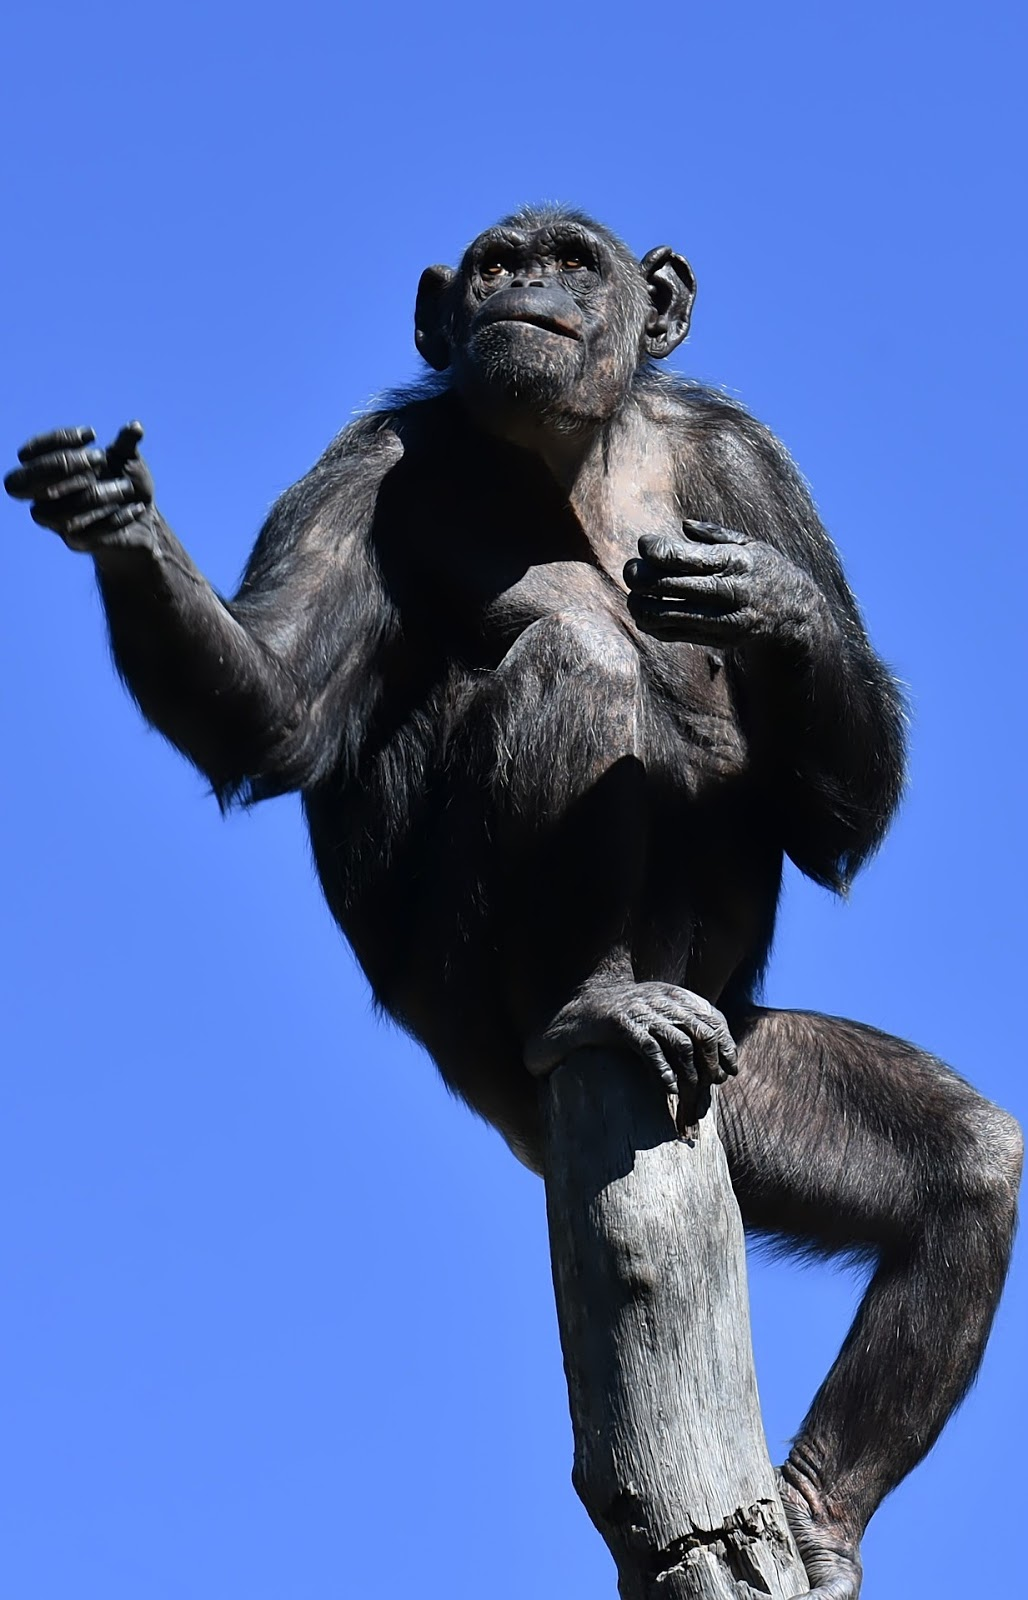 Gestures of a chimpanzee on a pole.